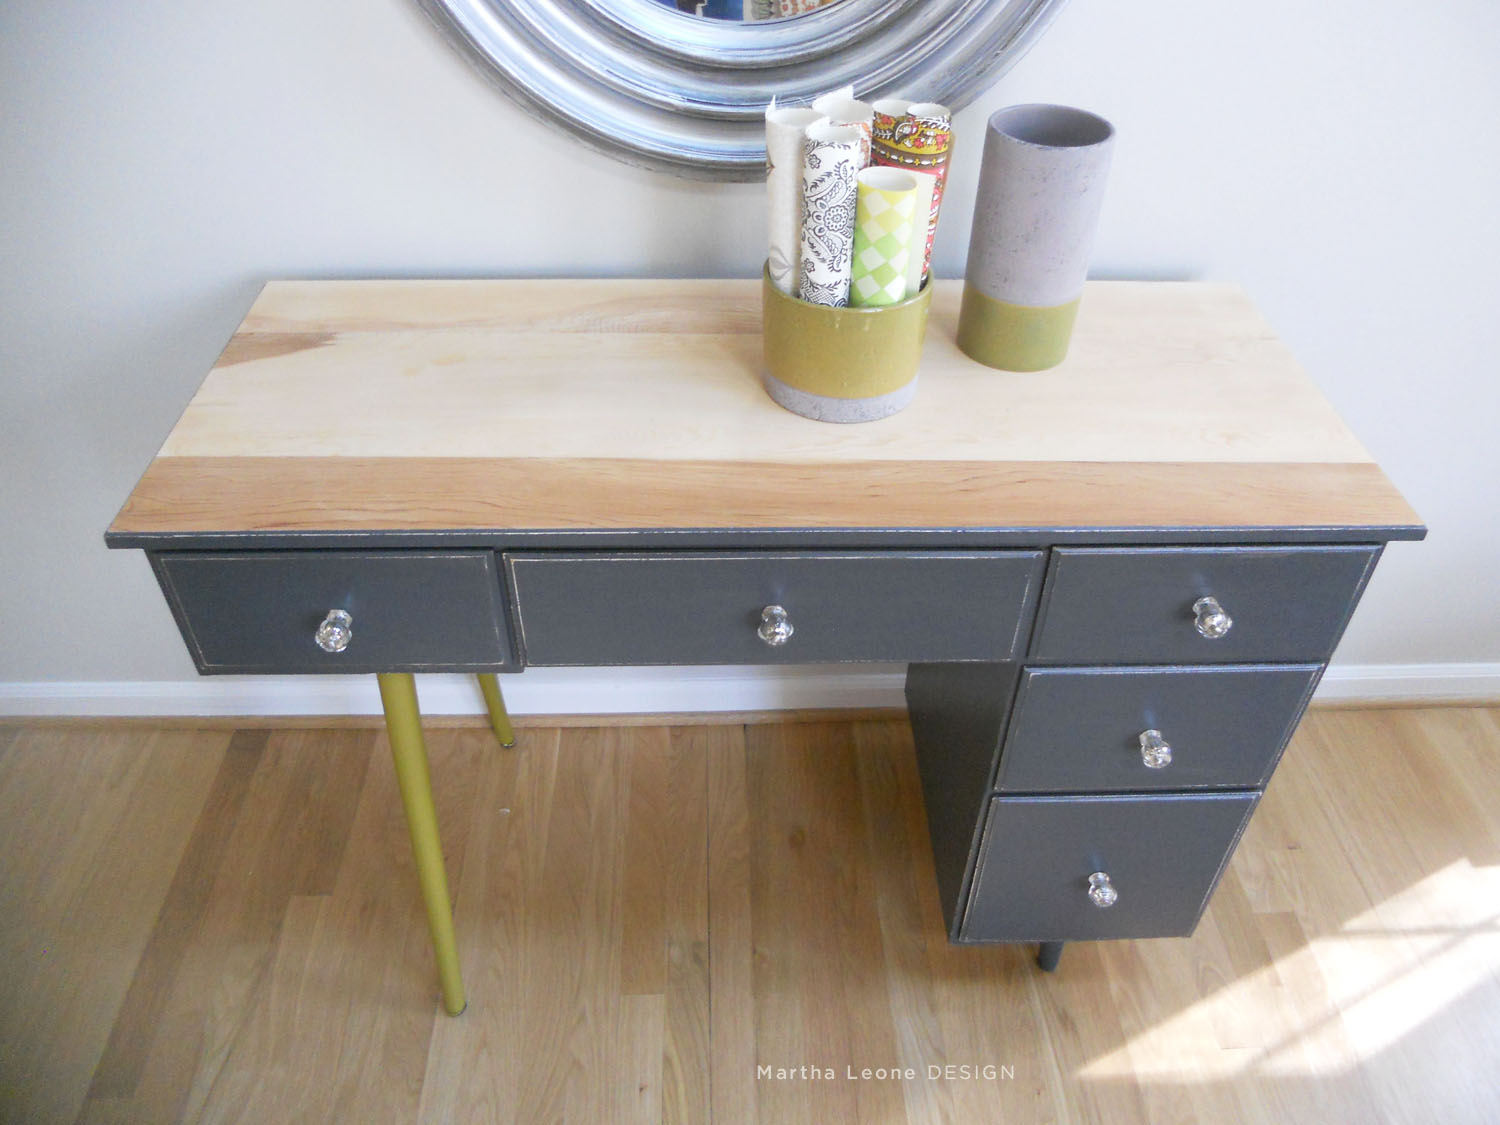 83 Mid century2 desk Martha Leone Design